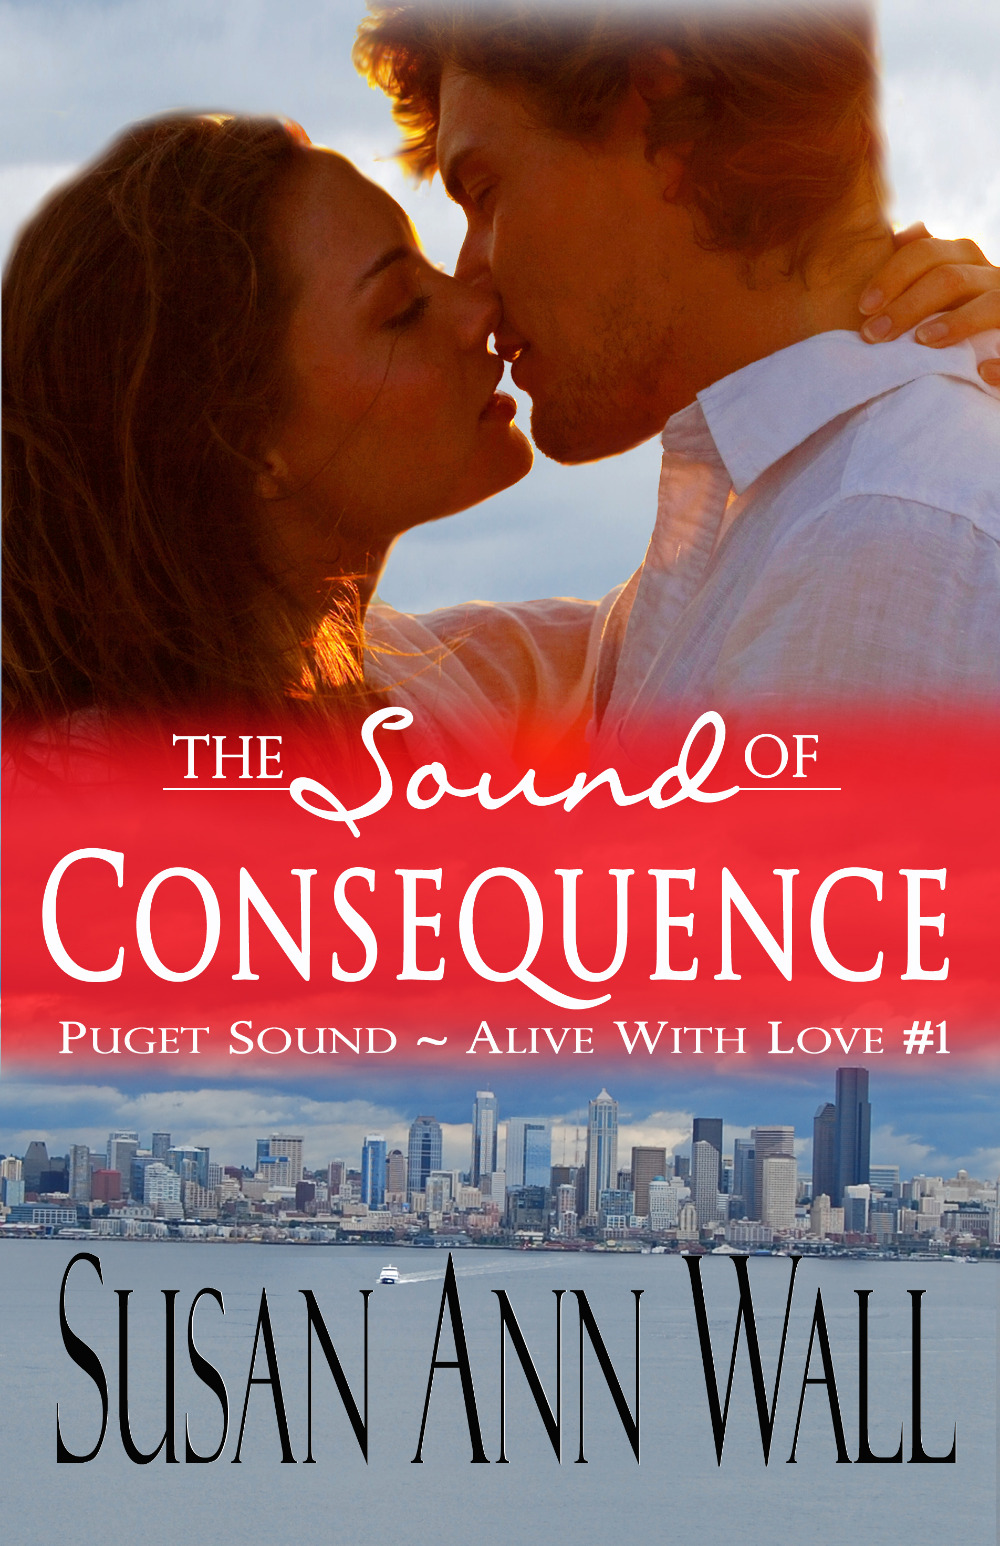 The Sound of Consequence (Puget Sound ~ Alive With Love #1)